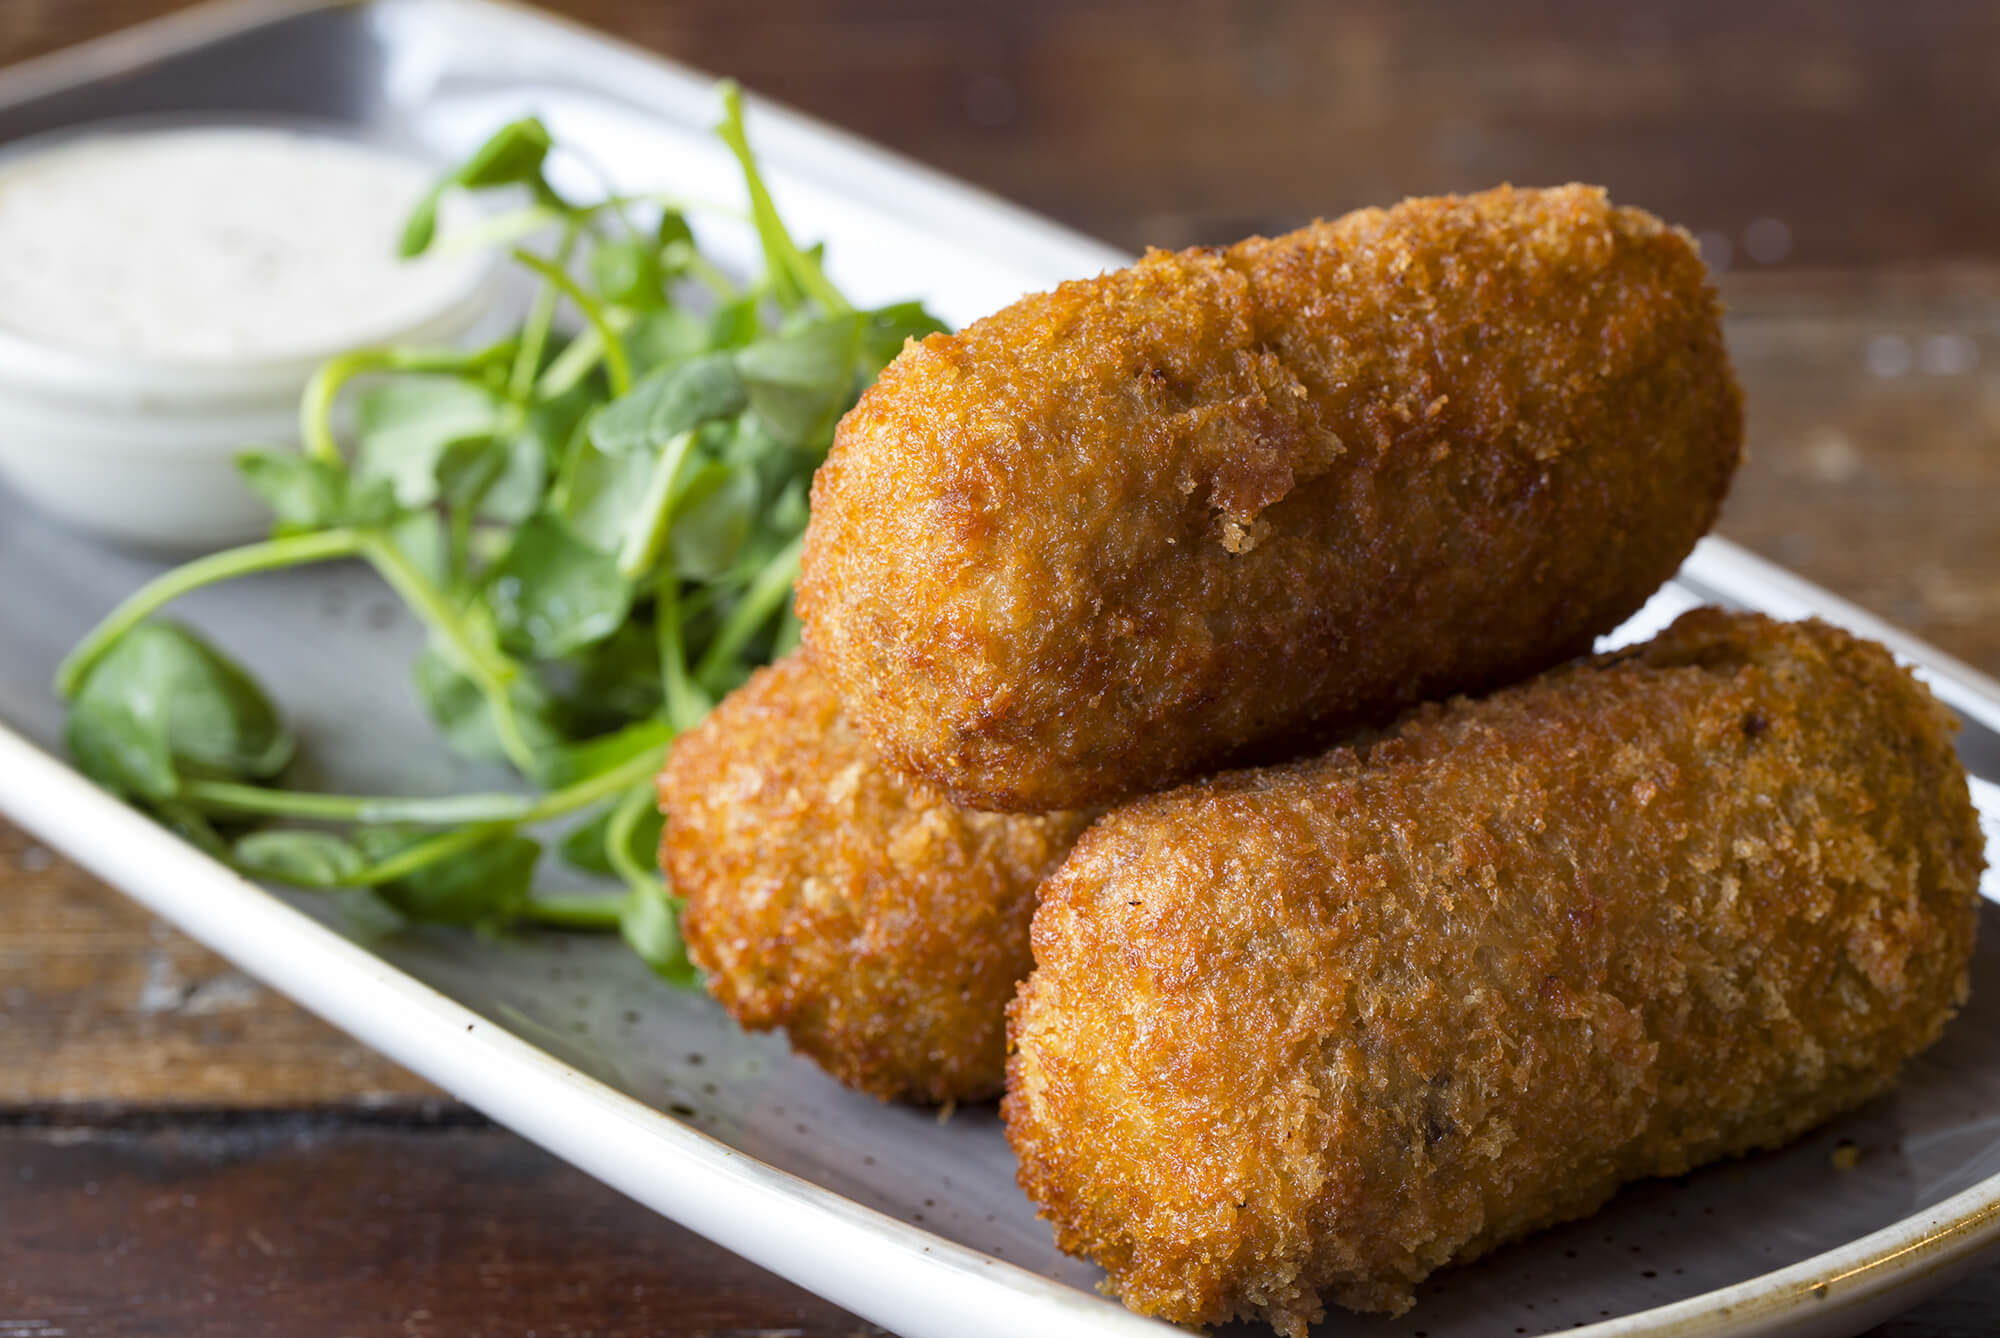 Three small breadcrumbed fried food roll containing, mashed potatoes with fish, meat or vegetables